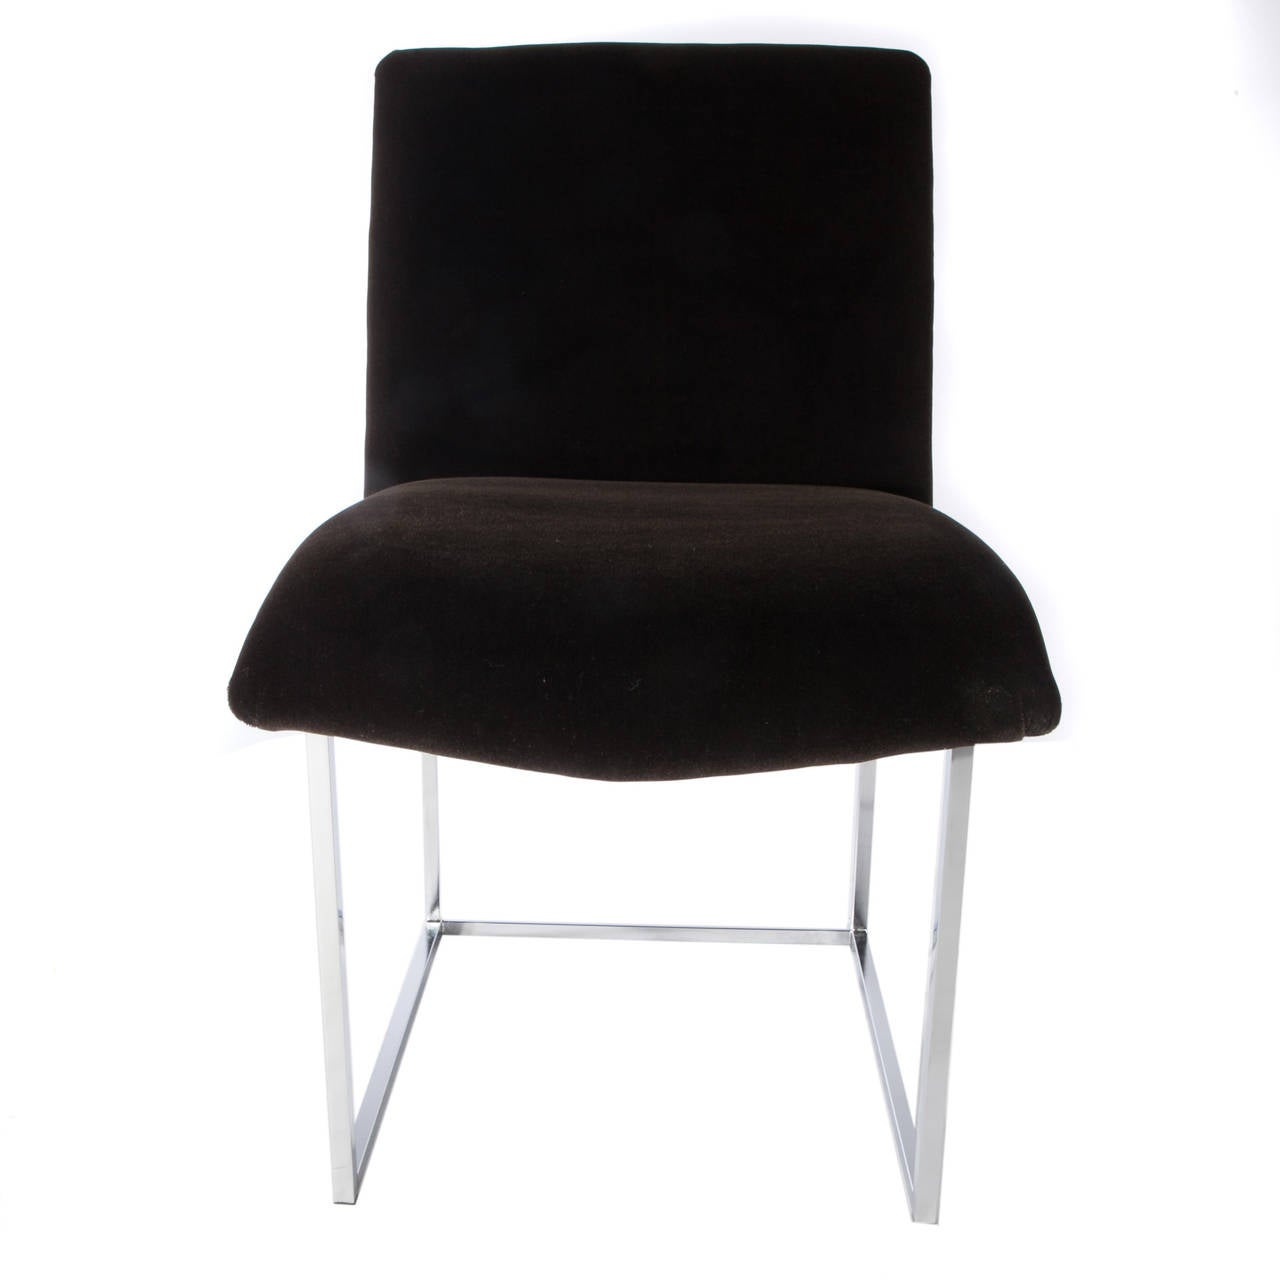 Set of Four Chrome and Mohair Dining Chairs by Milo Baughman, Circa 1970s For Sale 2